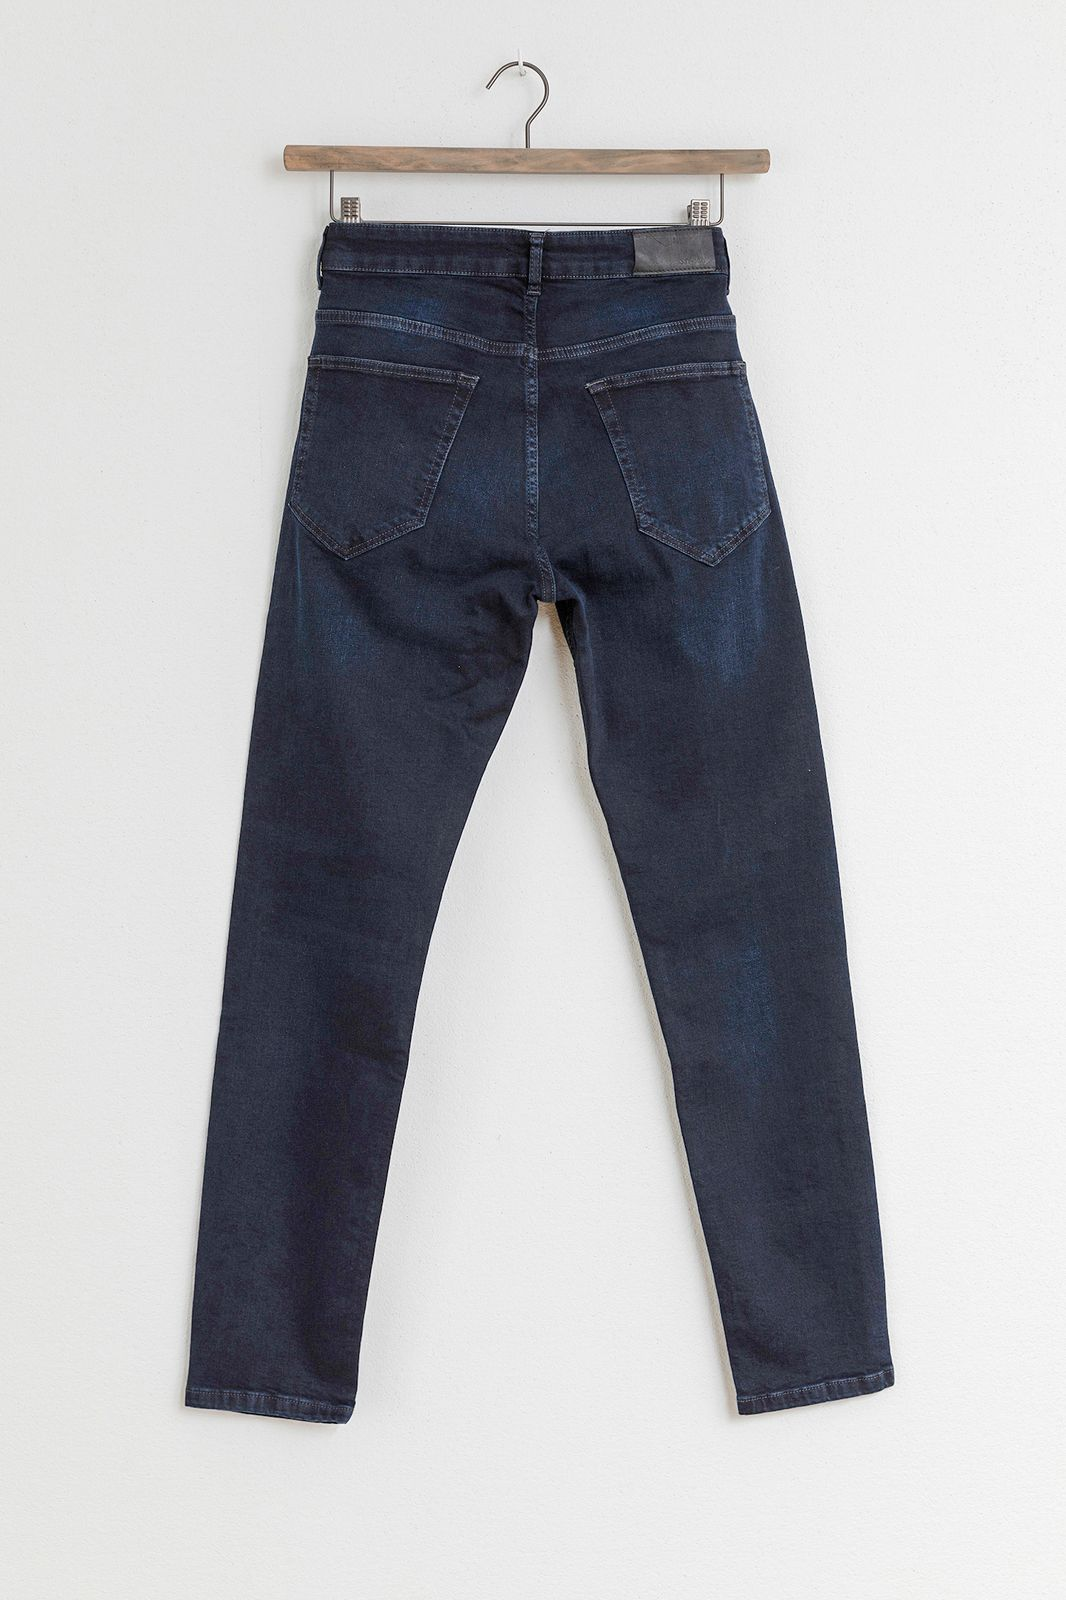 Donkerblauwe porter stretch jeans